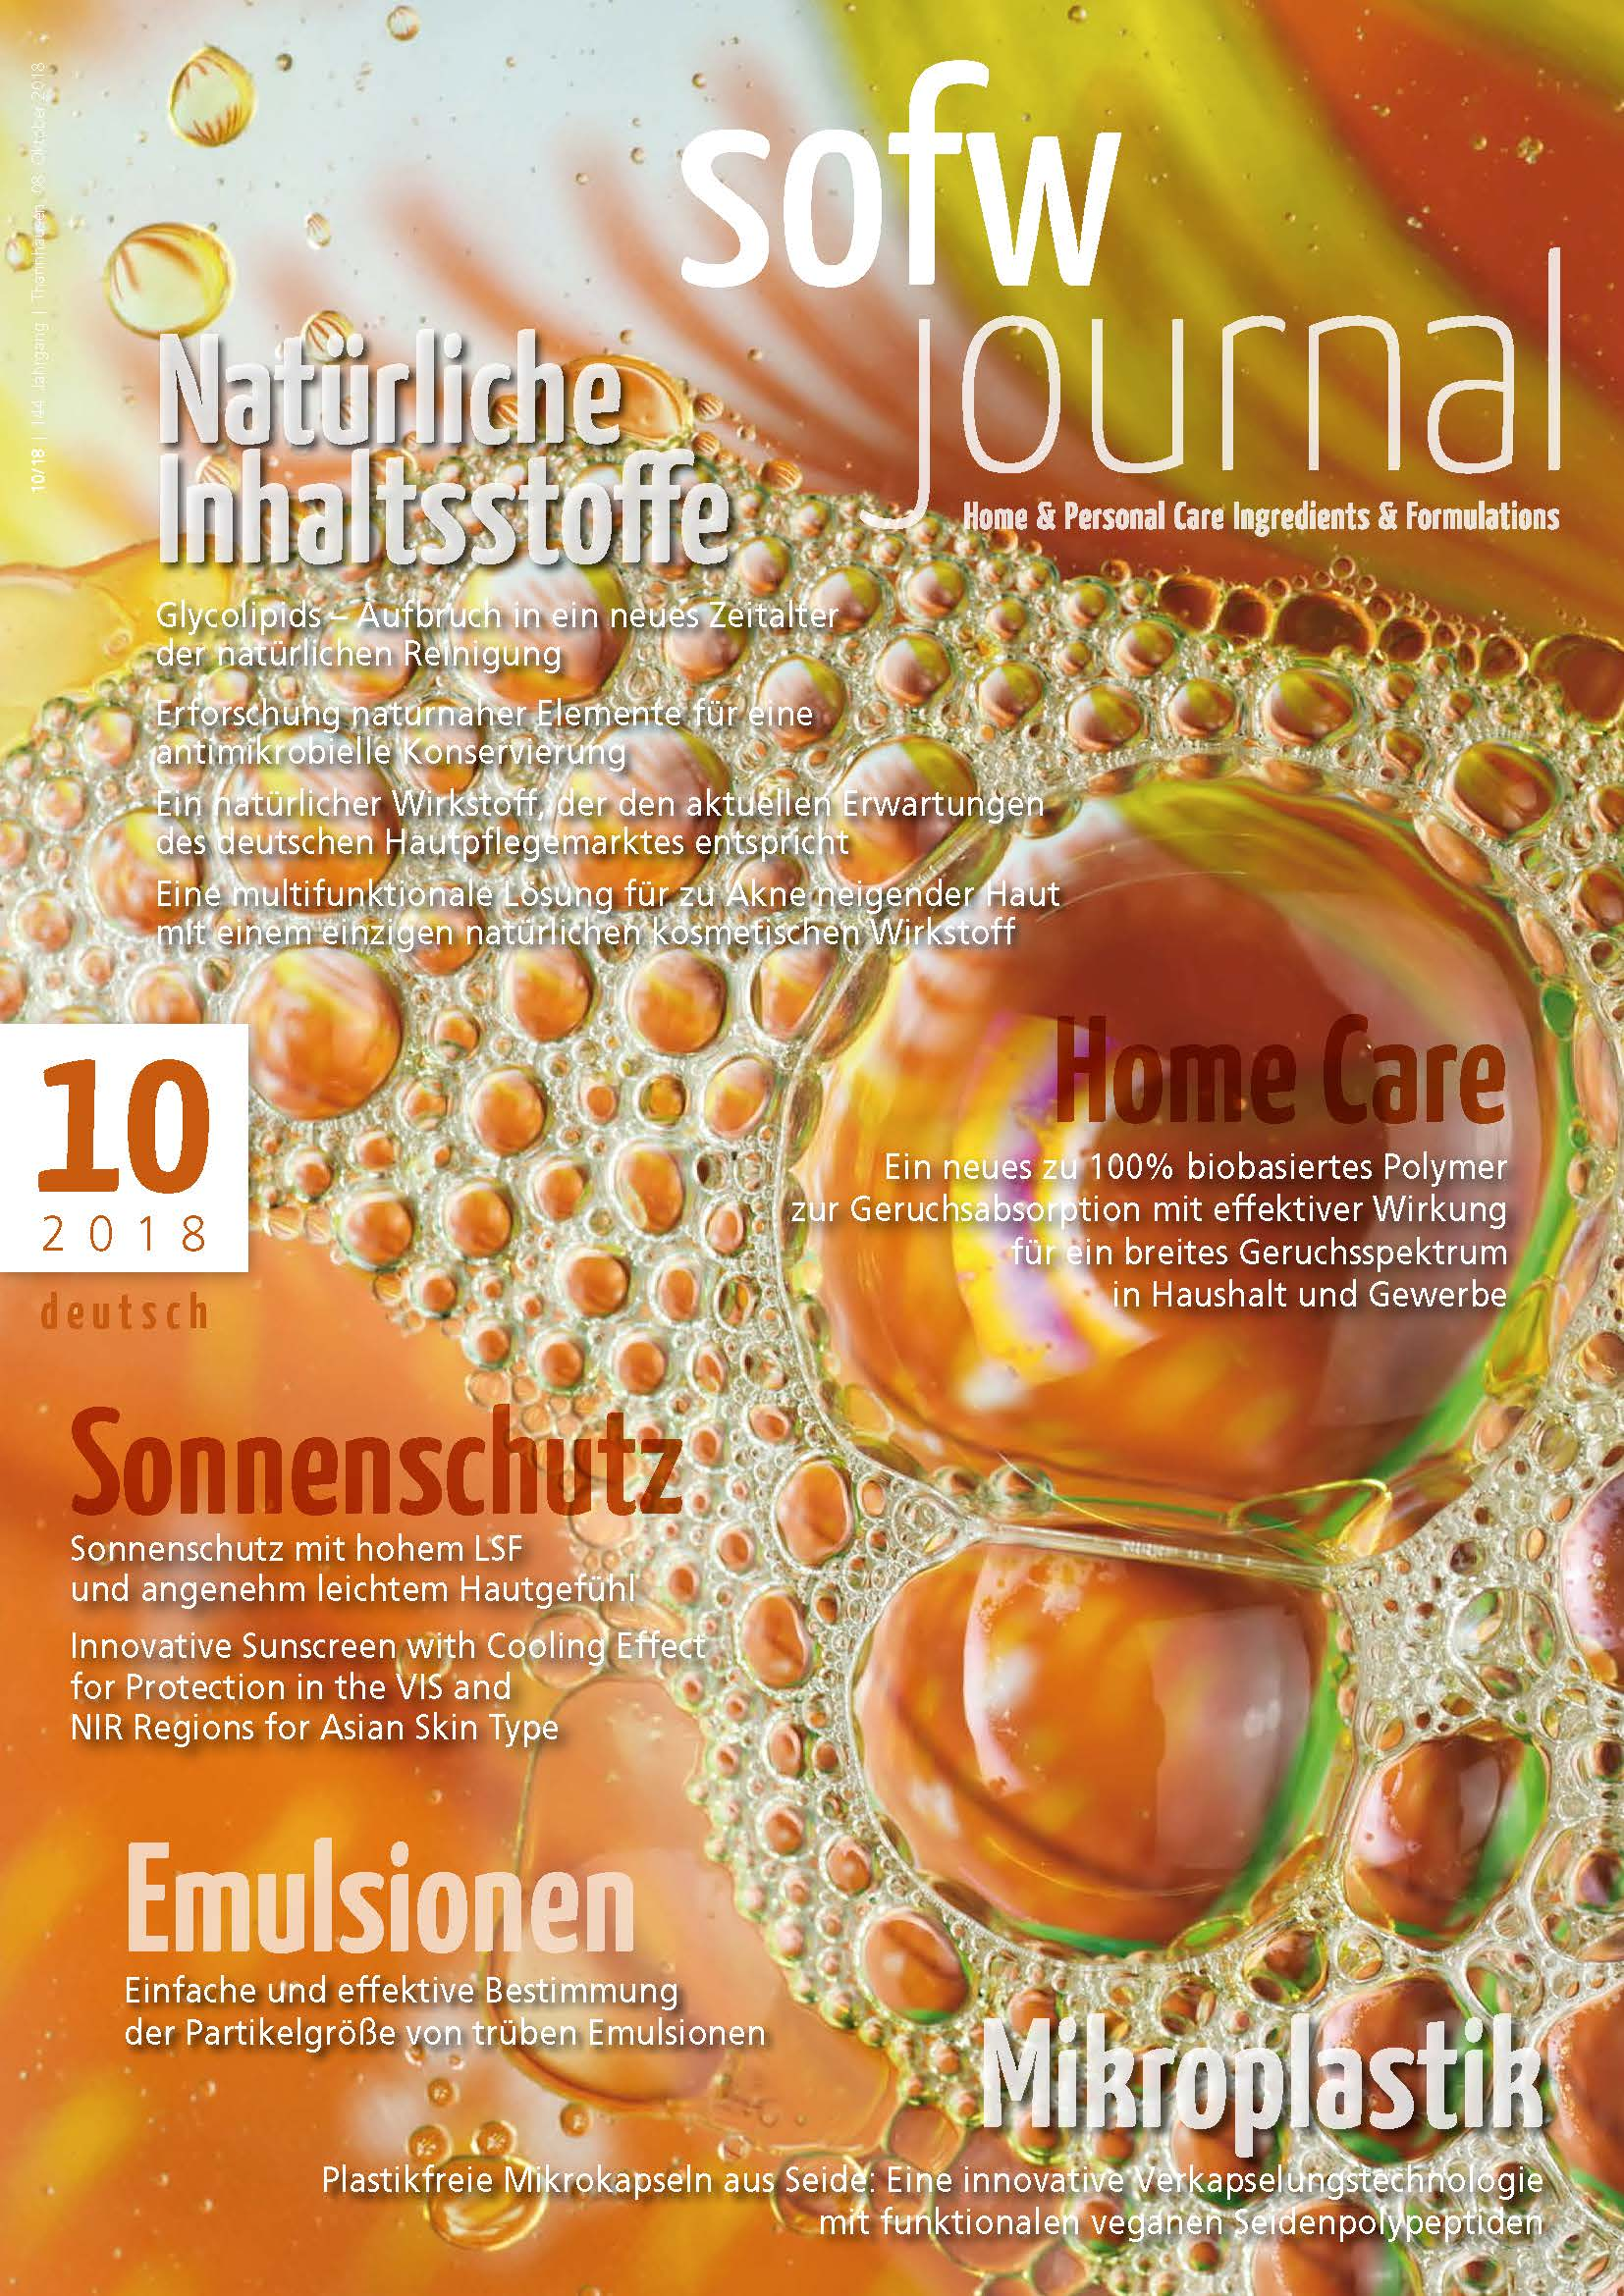 sofwjournal_de_2018_10_cover